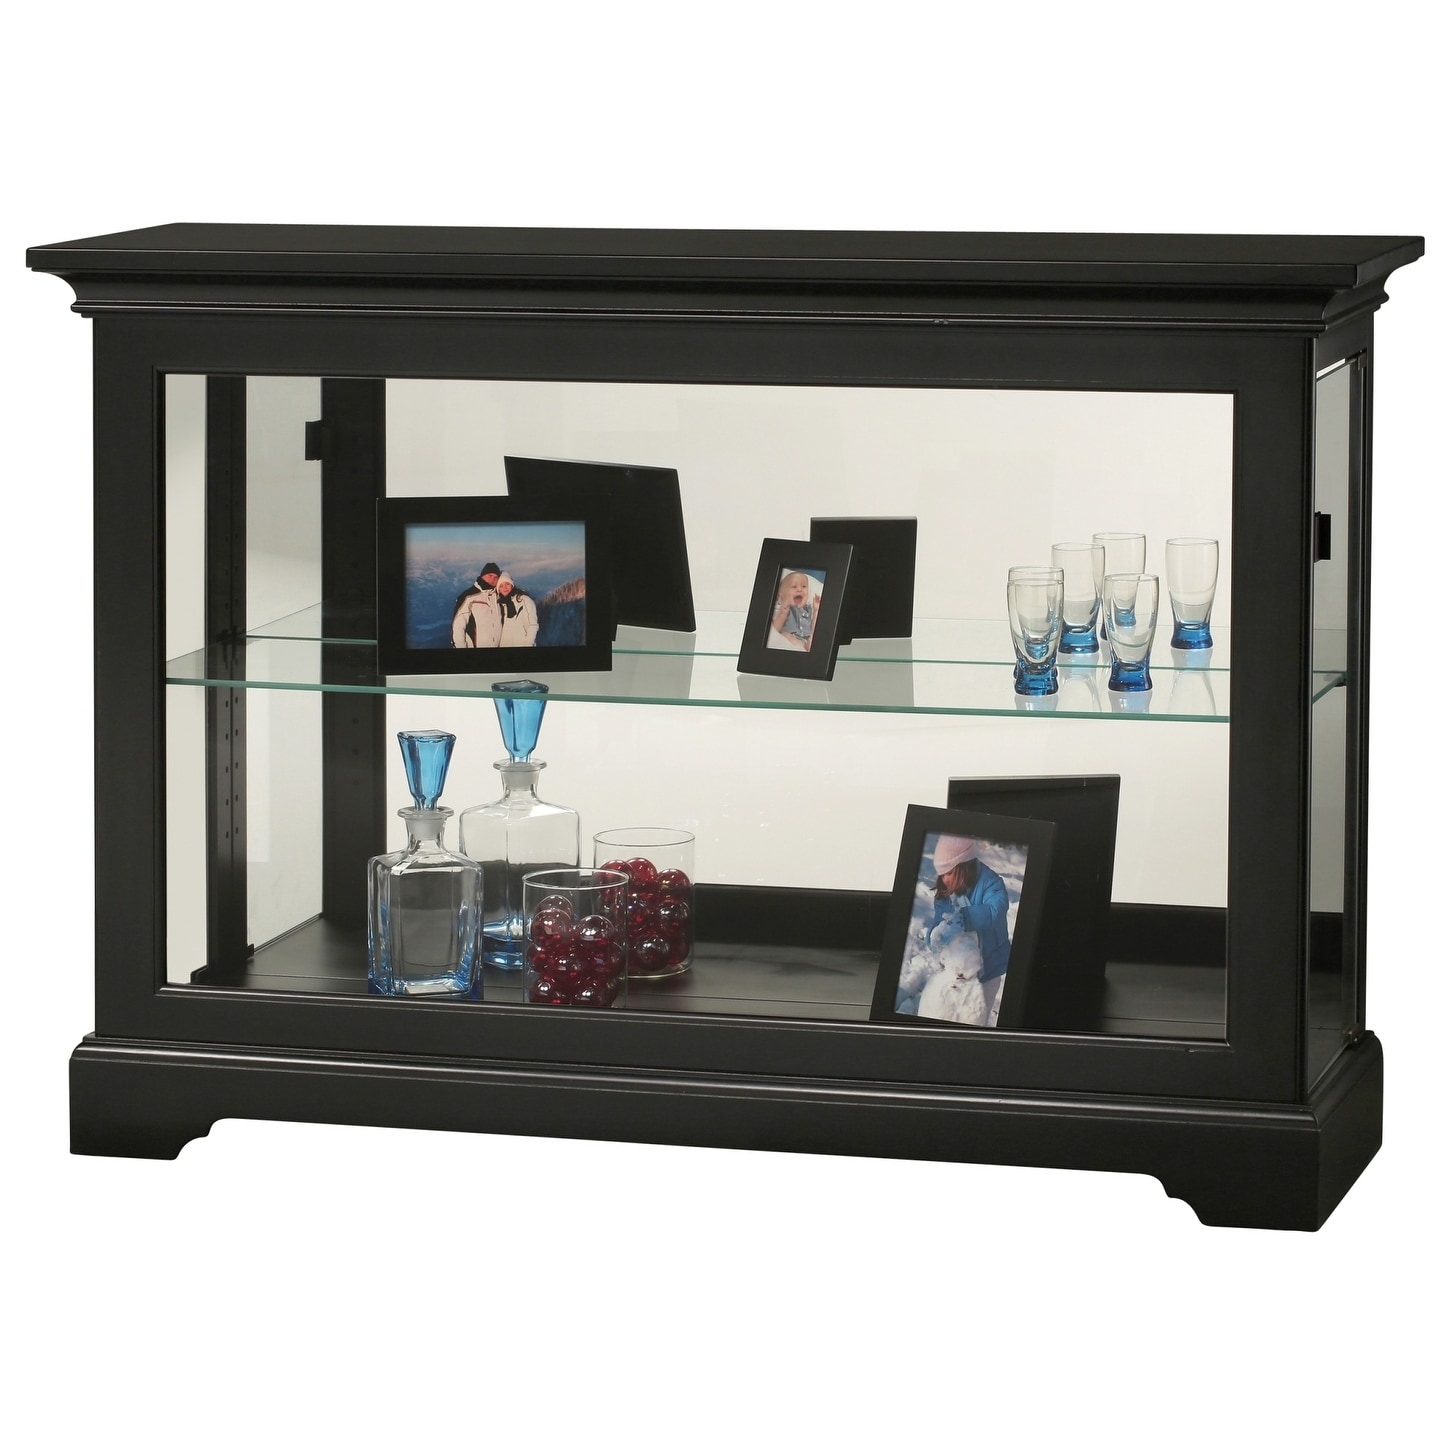 Howard Miller Underhill Ii Rich Black Wood 2 Shelf Living Room Curio Cabinet